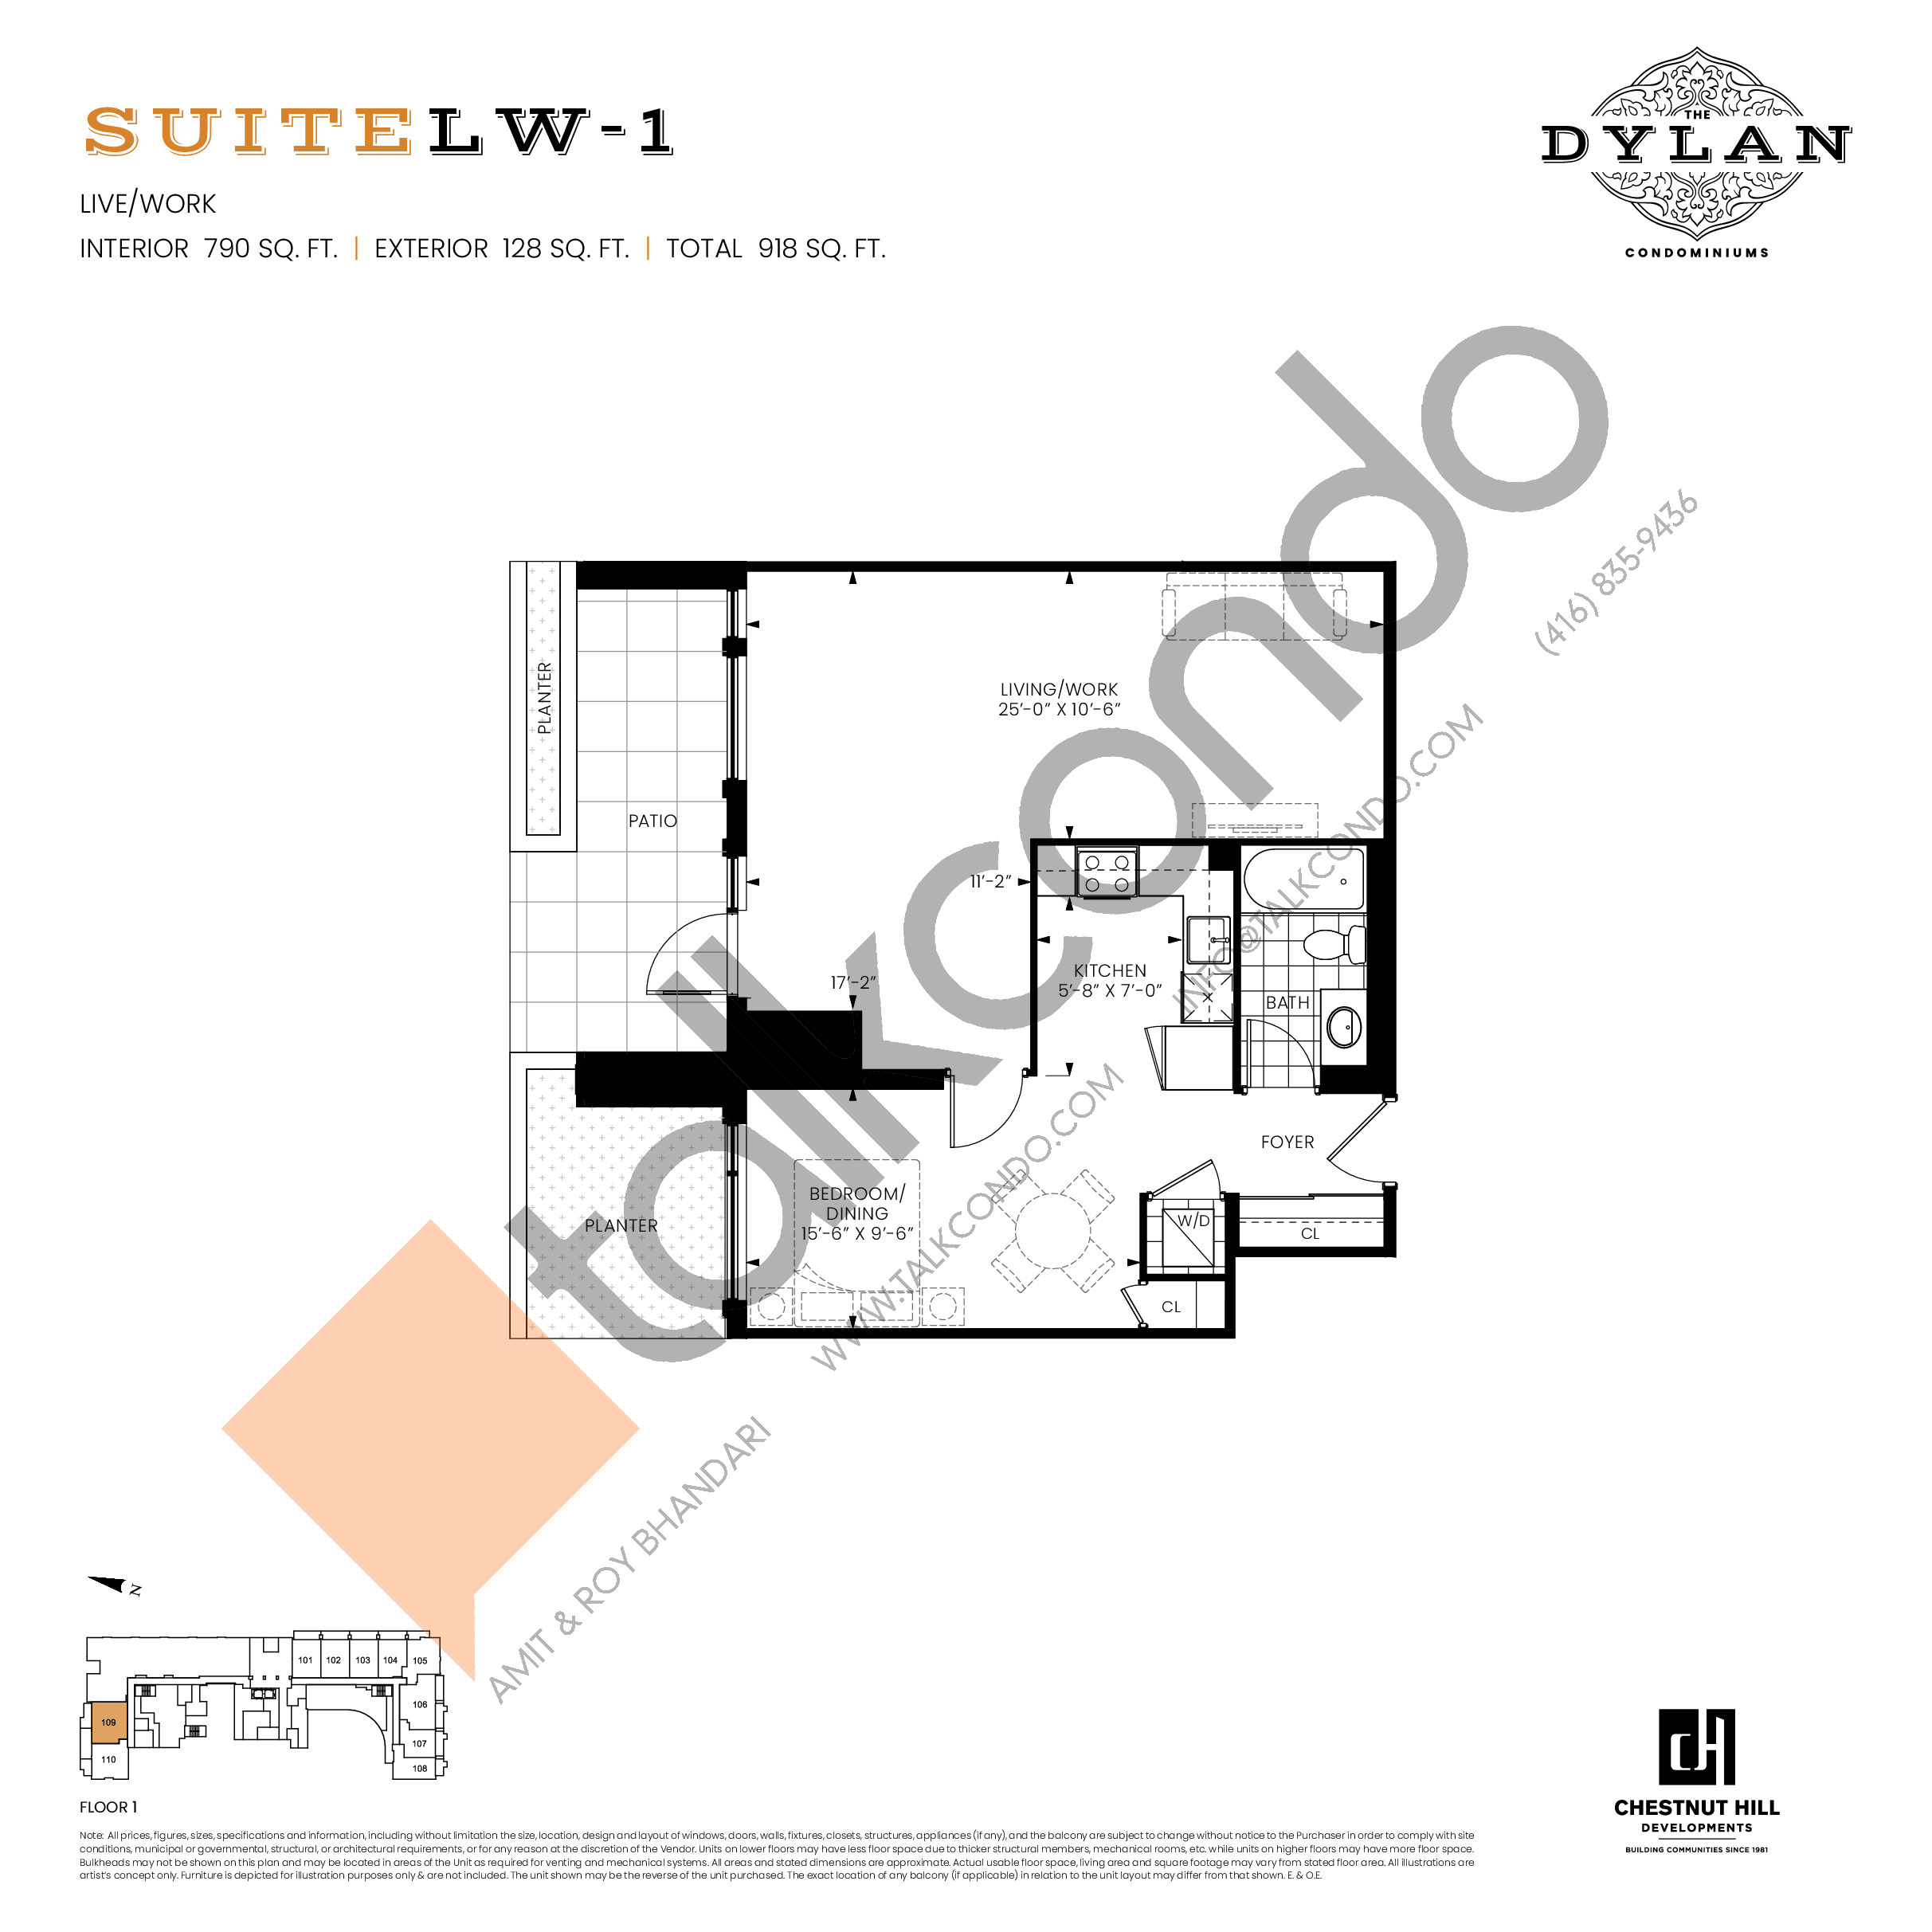 Suite LW-1 Floor Plan at The Dylan Condos - 790 sq.ft